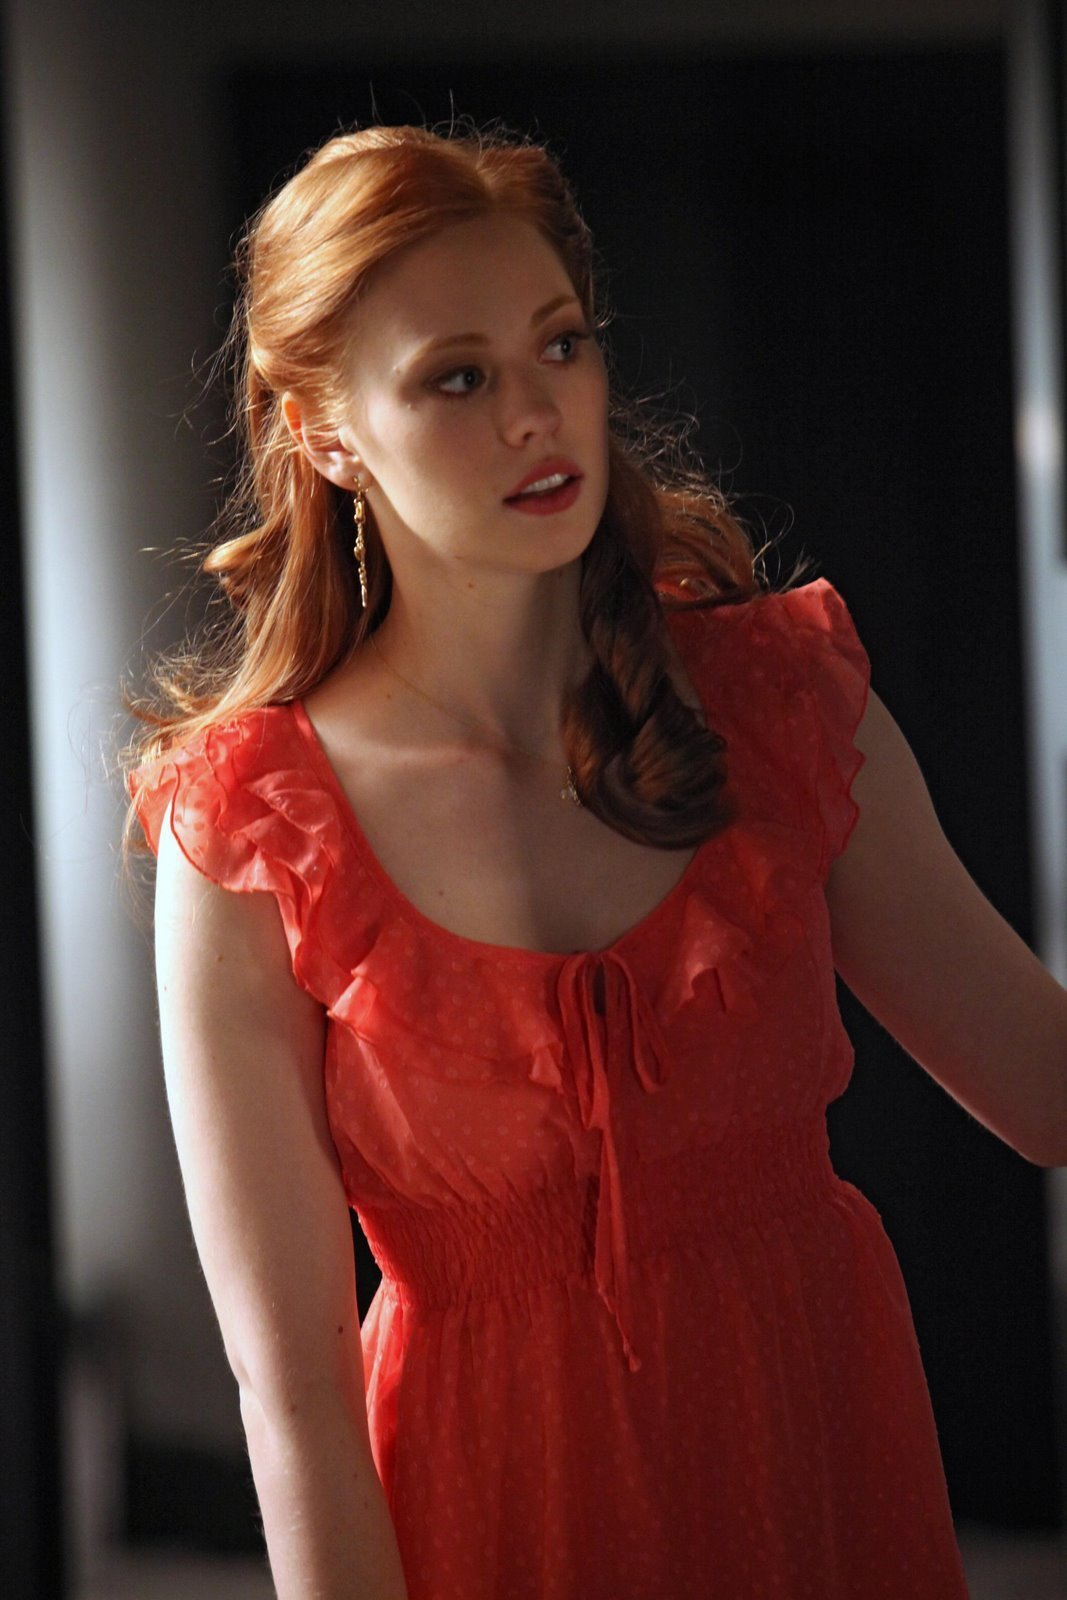 True Blood S2 Still Deborah Ann Woll Photo 7927602 Fanpop